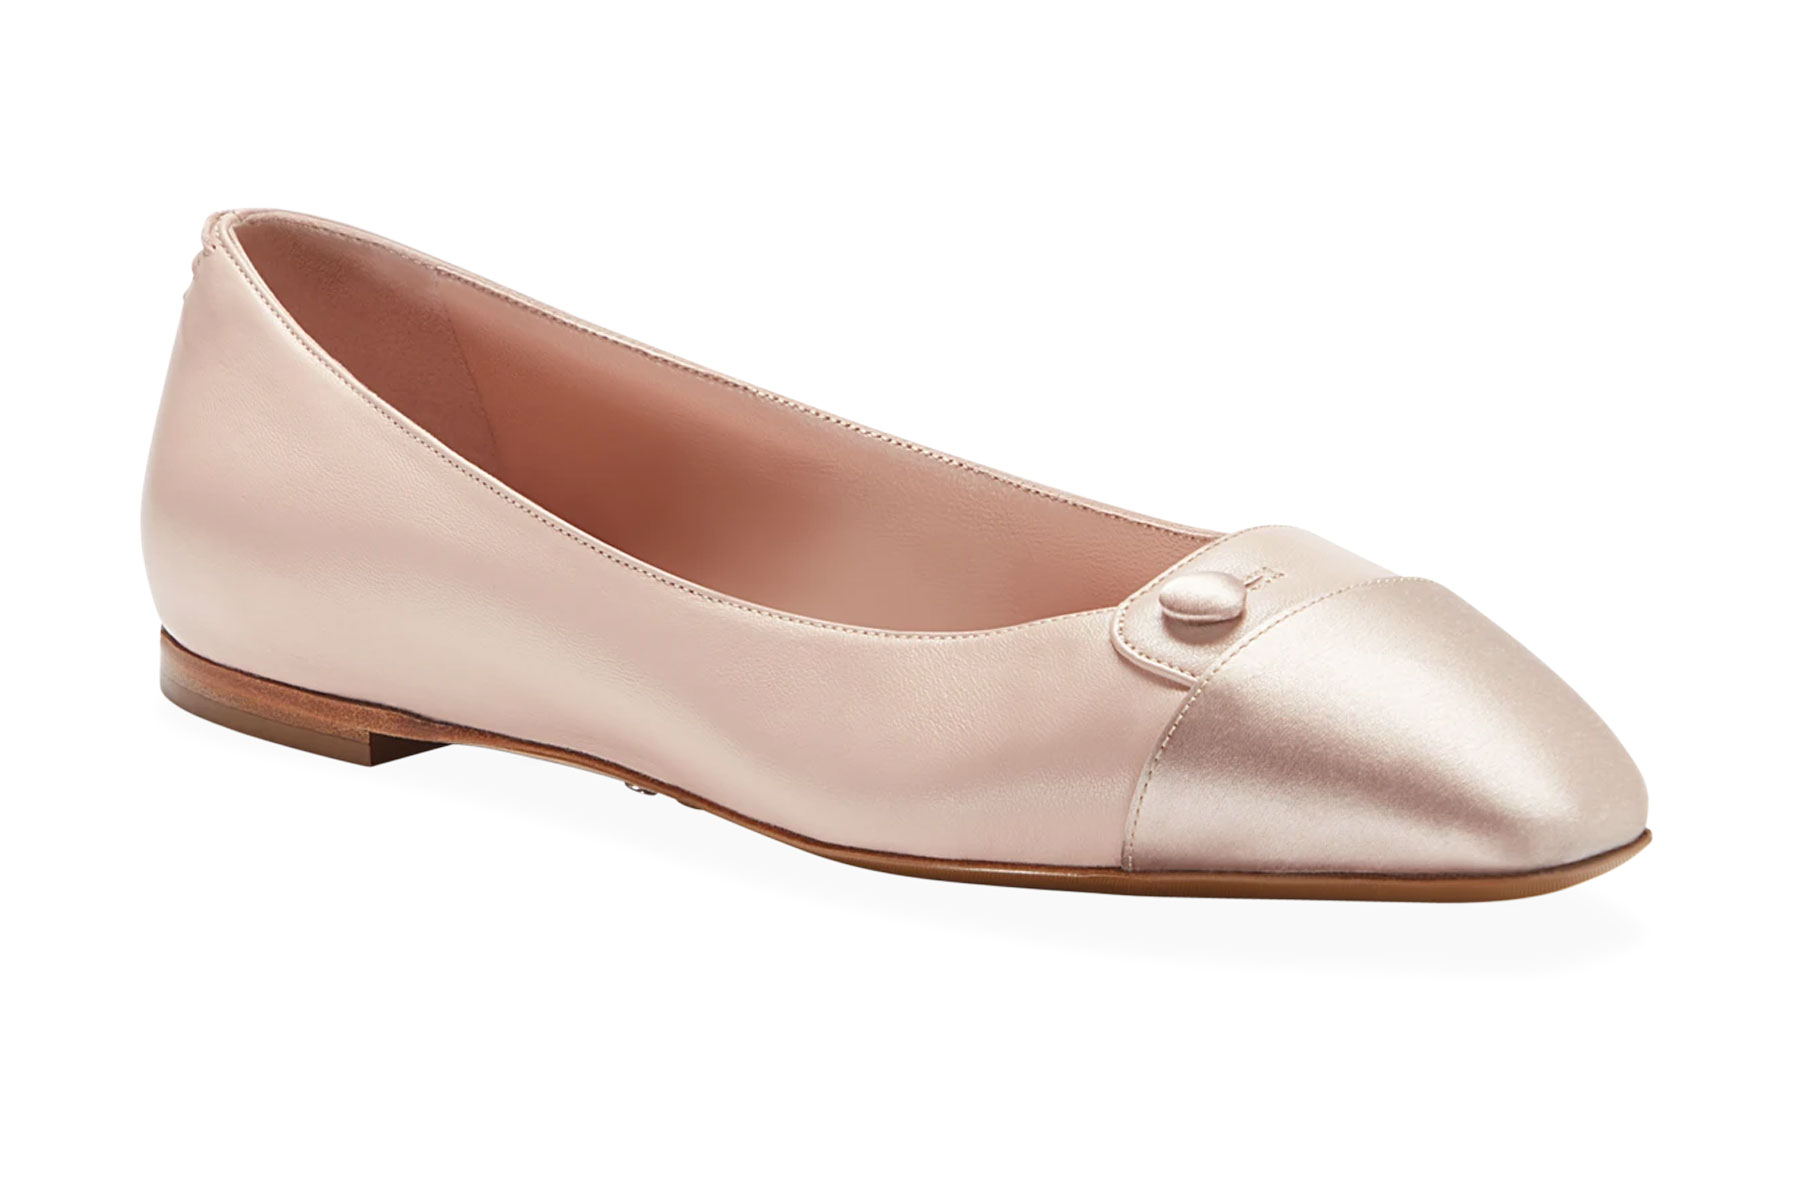 Pink leather ballet flats